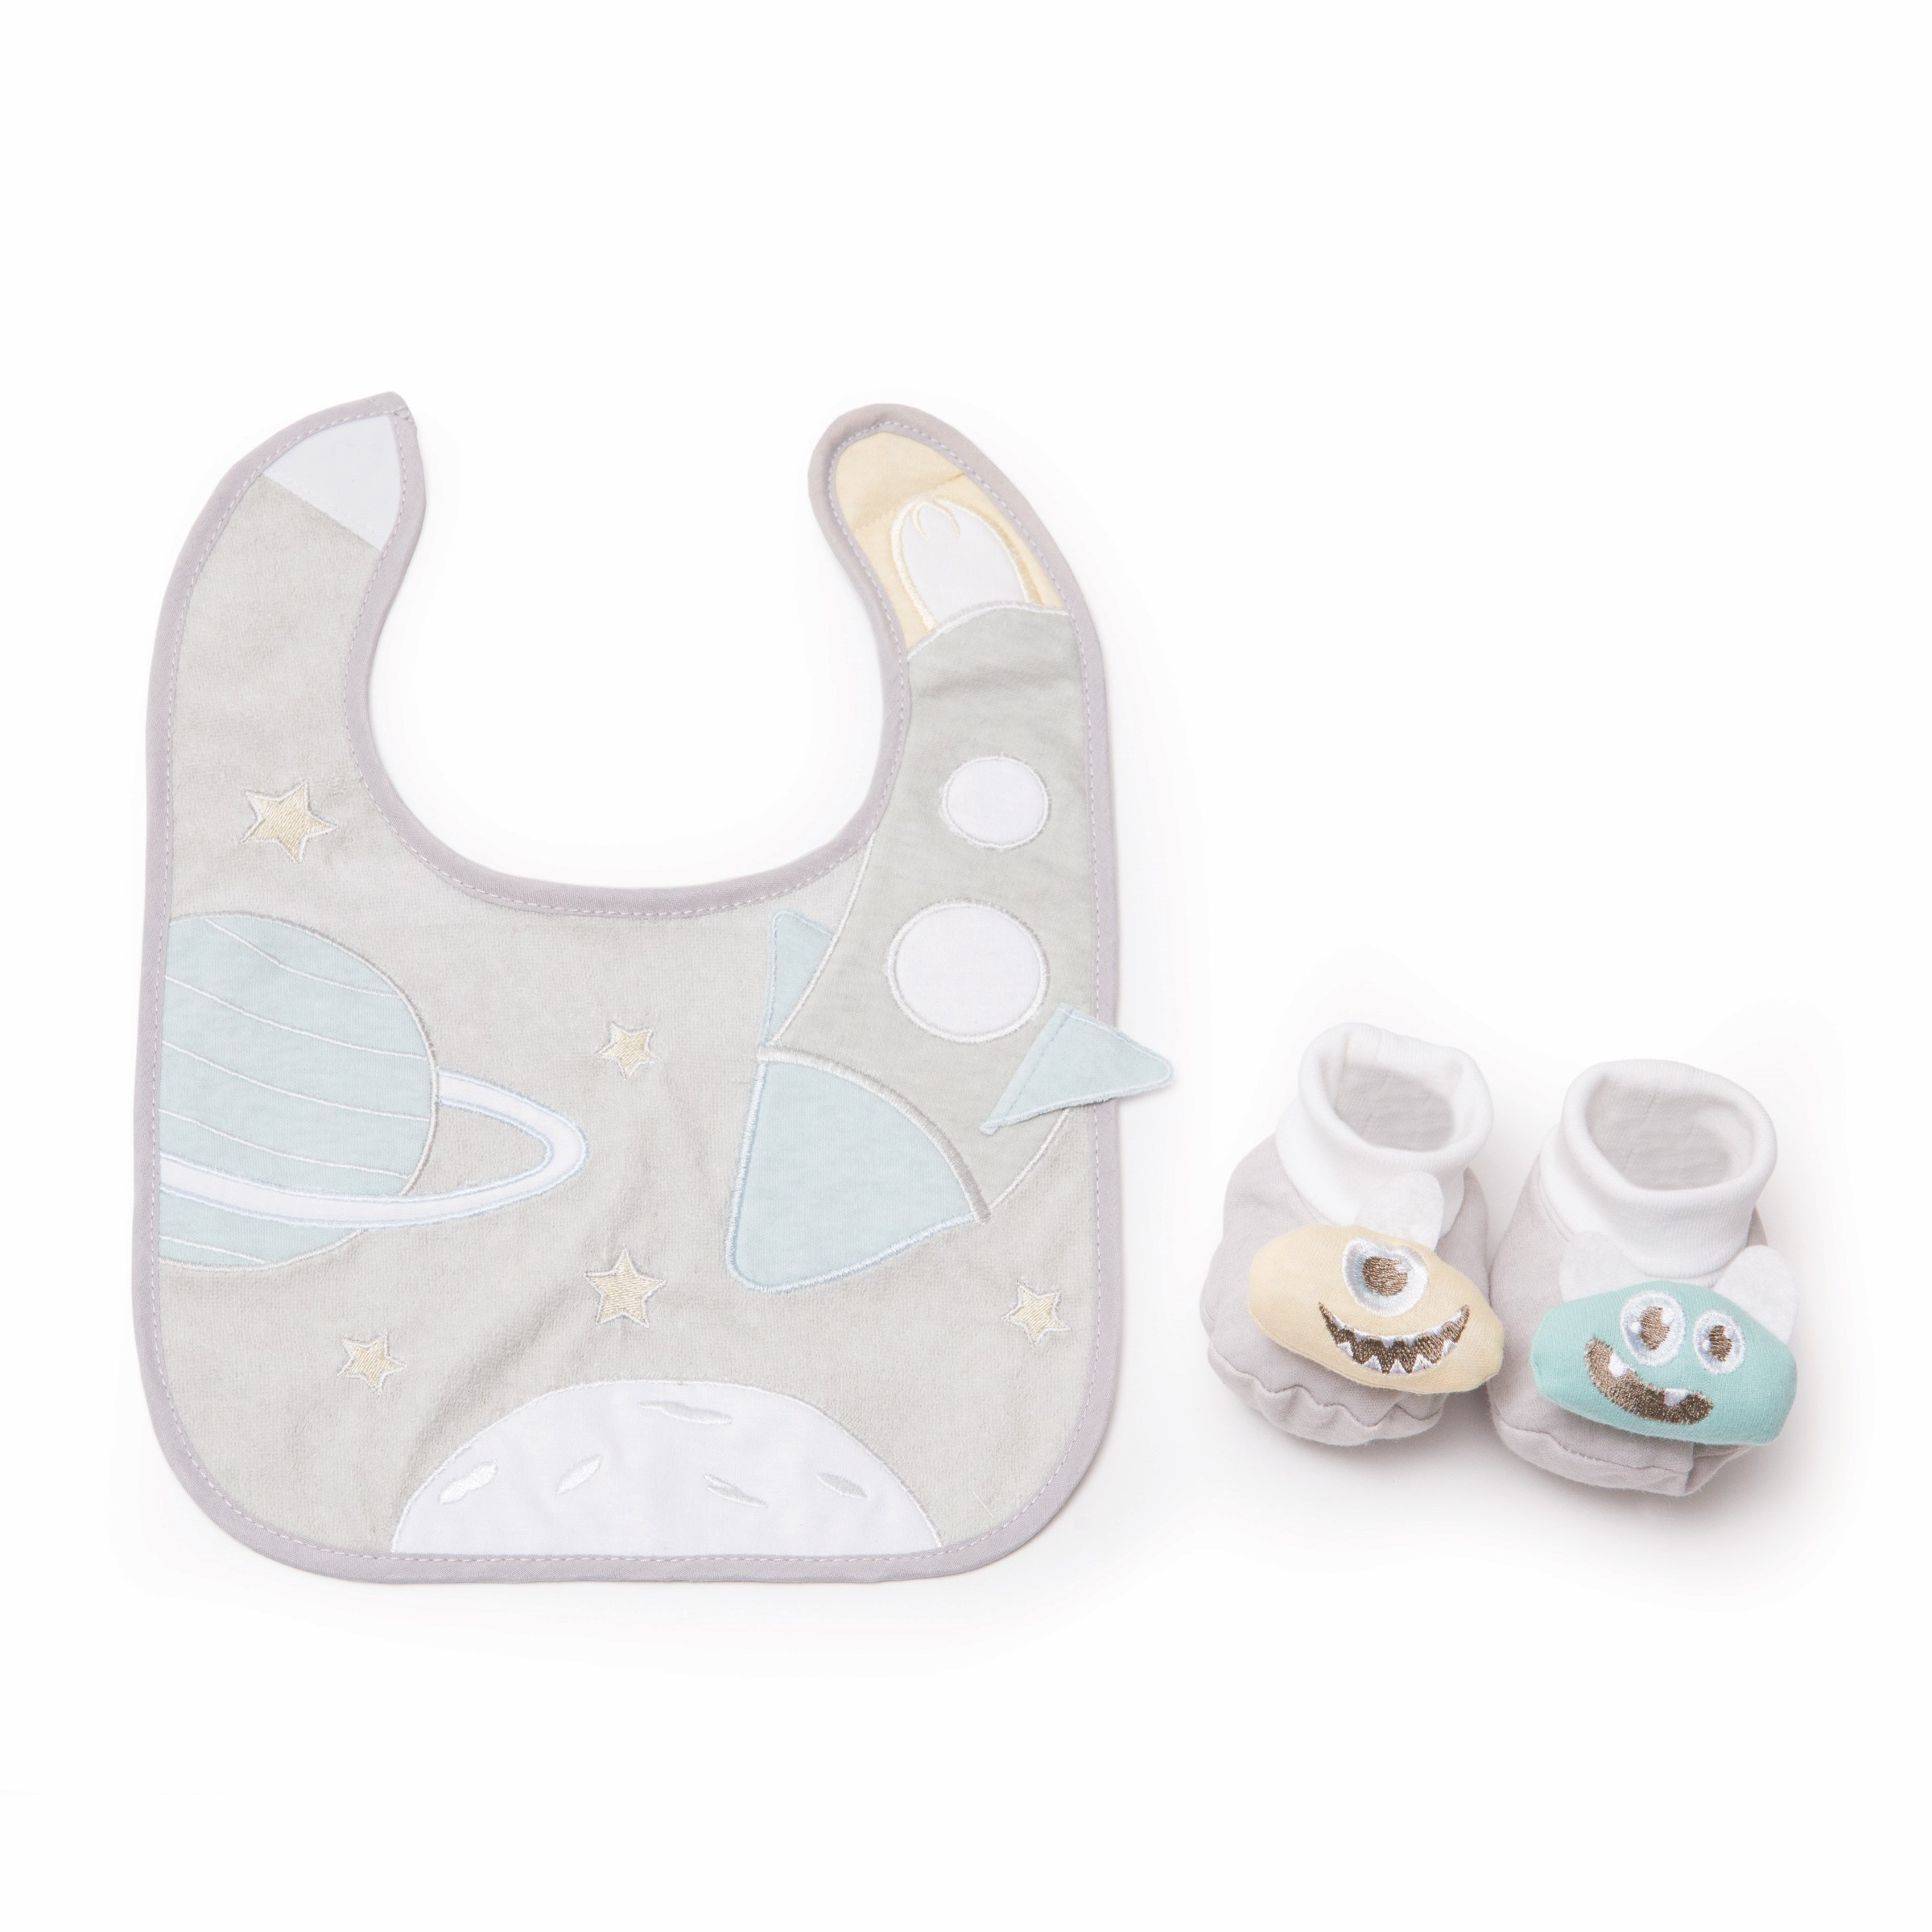 Rocketship bib and bootie set